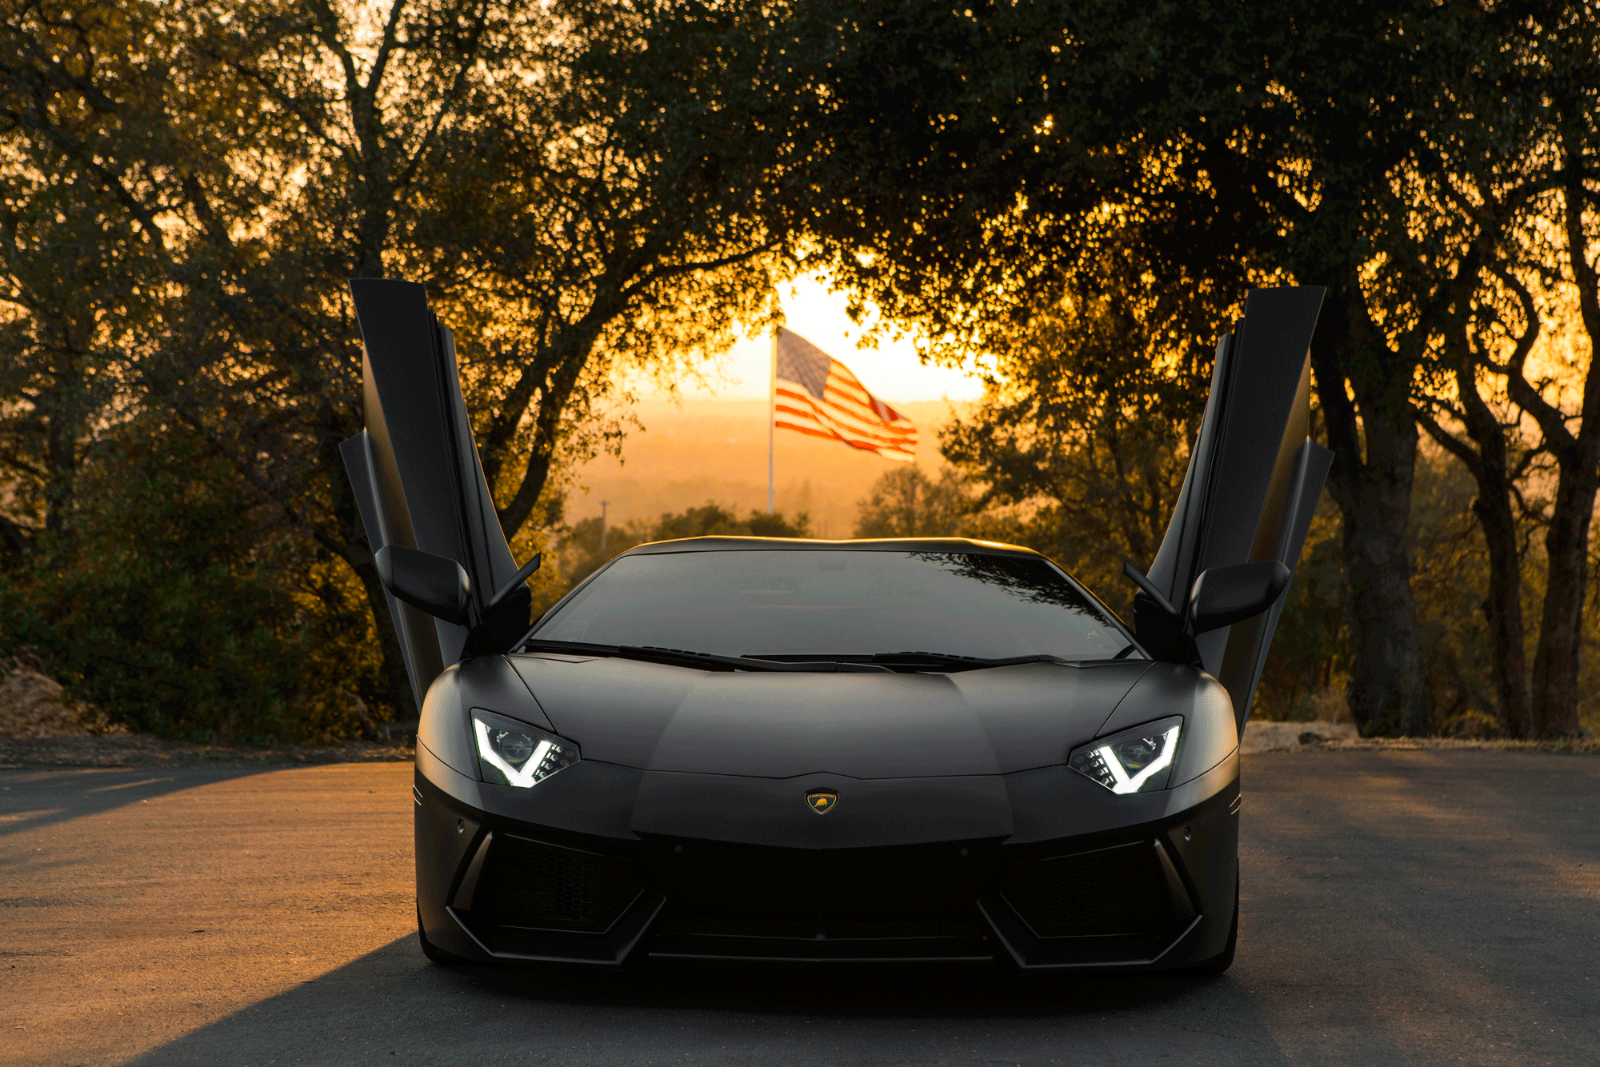 Awesome awesome lamborghini aventador lp coupe door